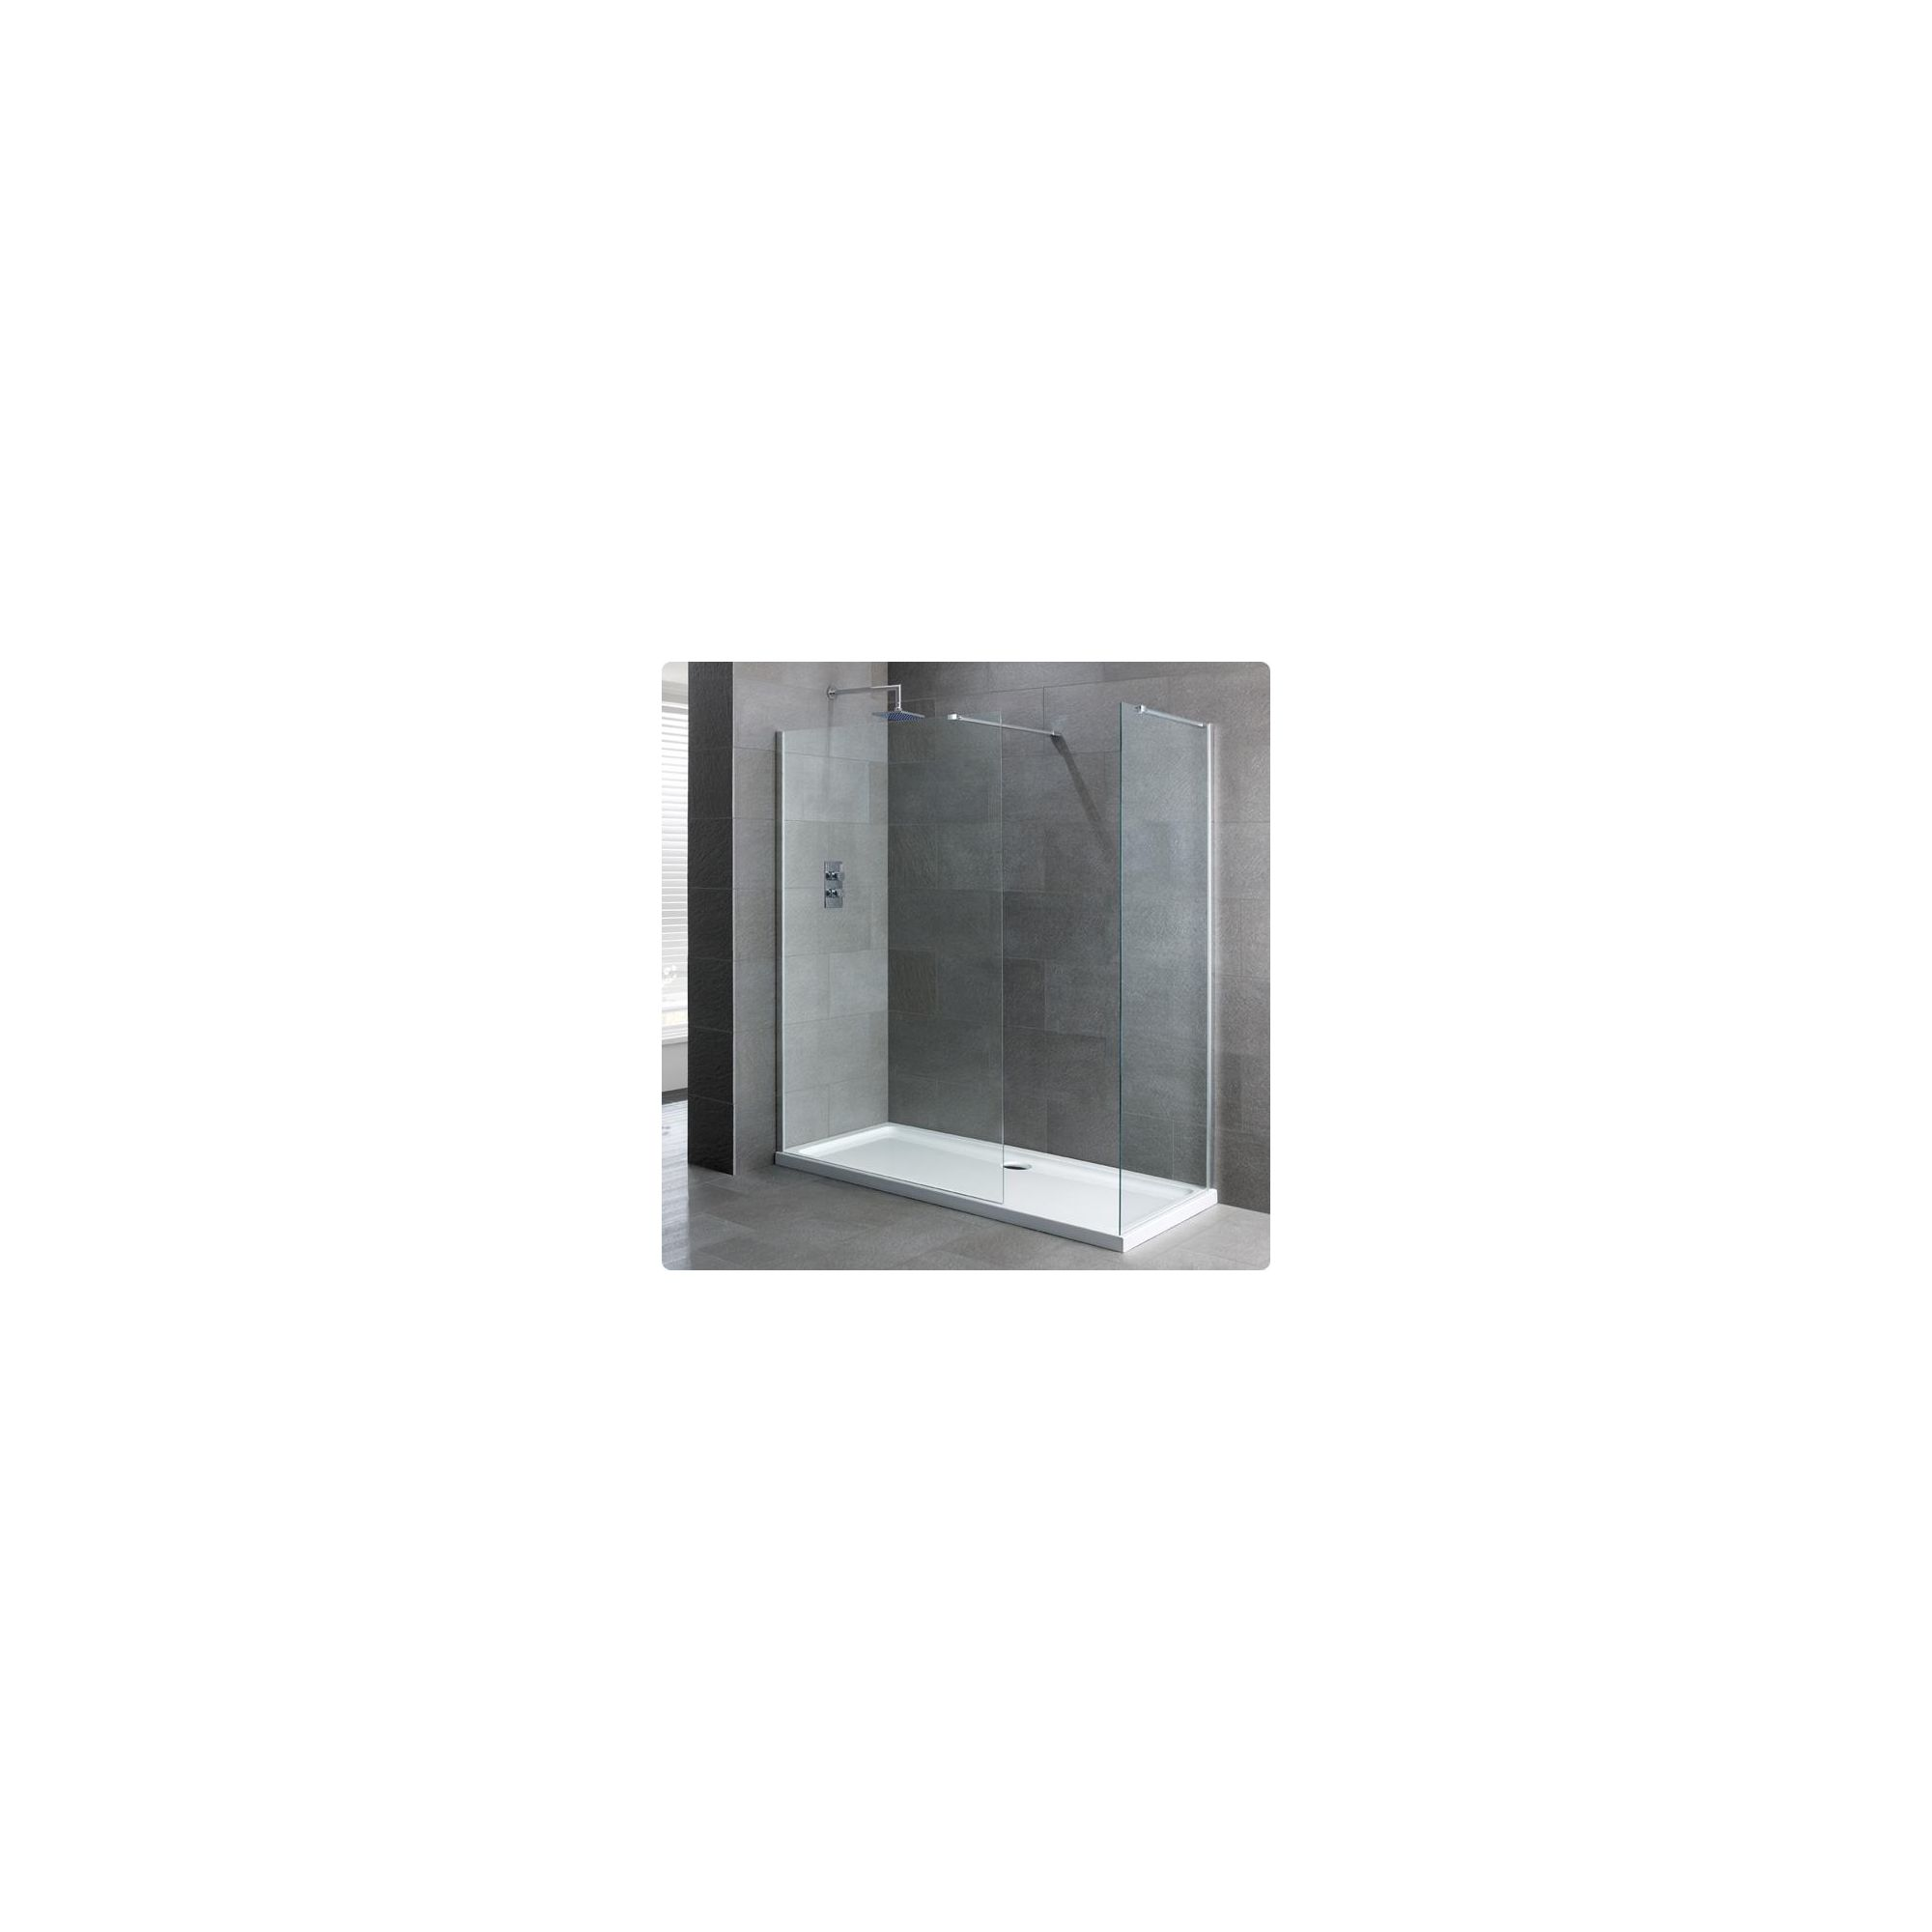 Duchy Select Silver Walk-In Shower Enclosure 1200mm x 760mm, Standard Tray, 6mm Glass at Tesco Direct